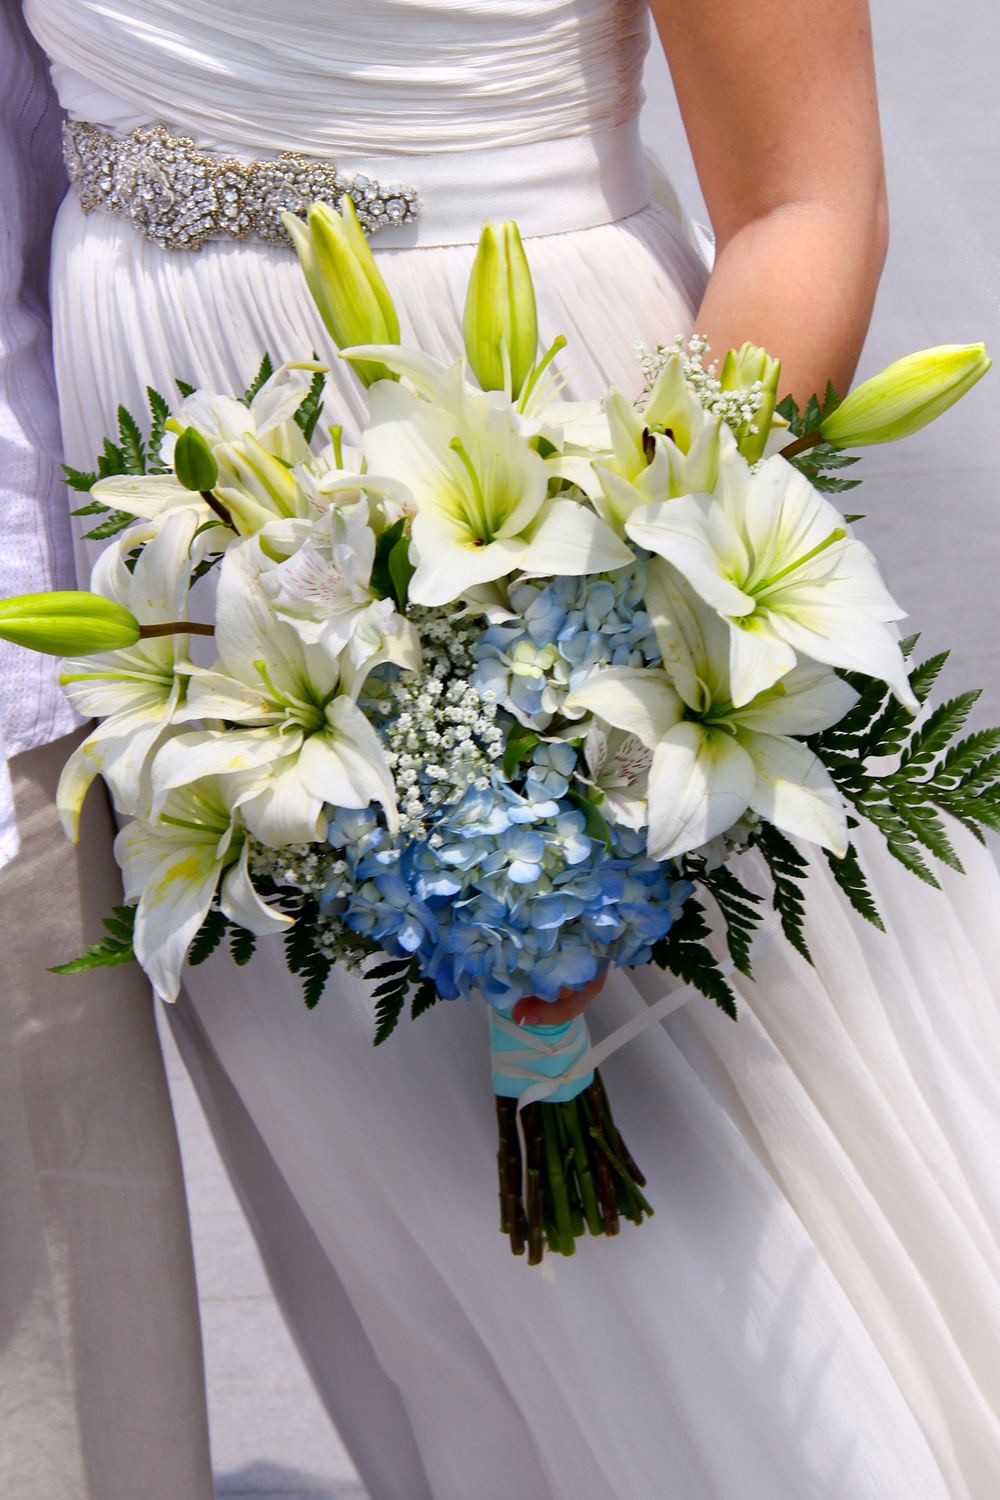 Flower gallery yes love weddingsyes love weddingsyes love weddings hilton head wedding tybee island wedding savannah wedding wedding packages destination wedding izmirmasajfo